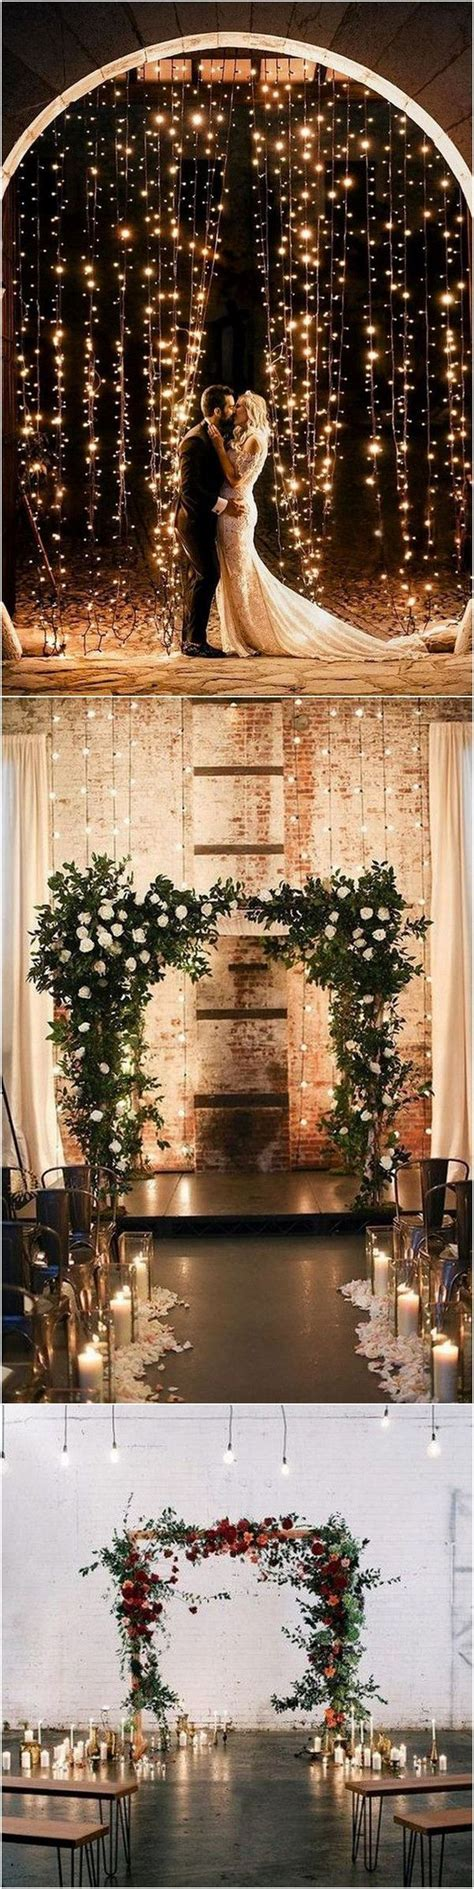 whimsical winter wedding arches  backdrops